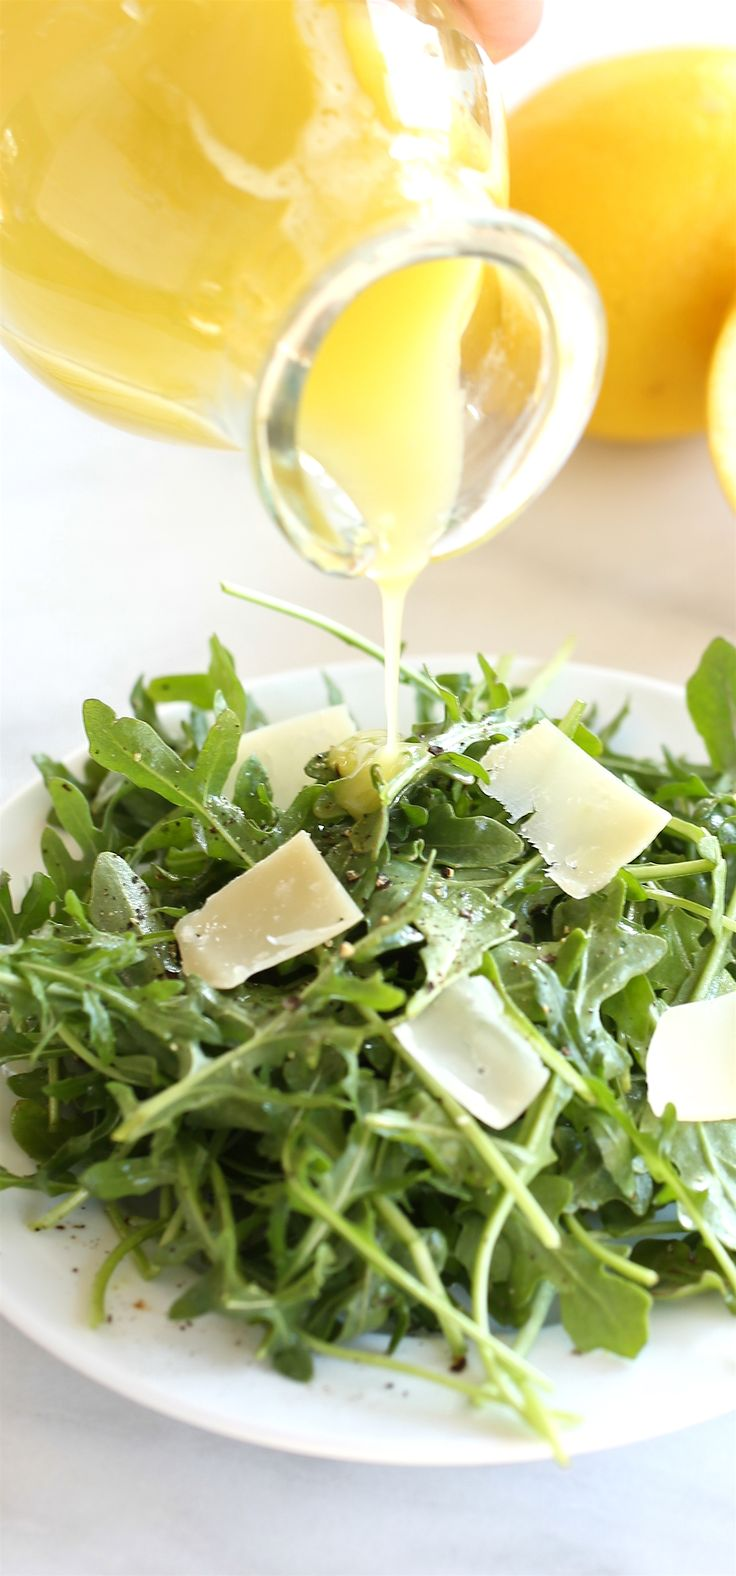 Light and refreshing lemon vinaigrette recipe made in just 30 seconds! Perfect for a summer arugula salad.